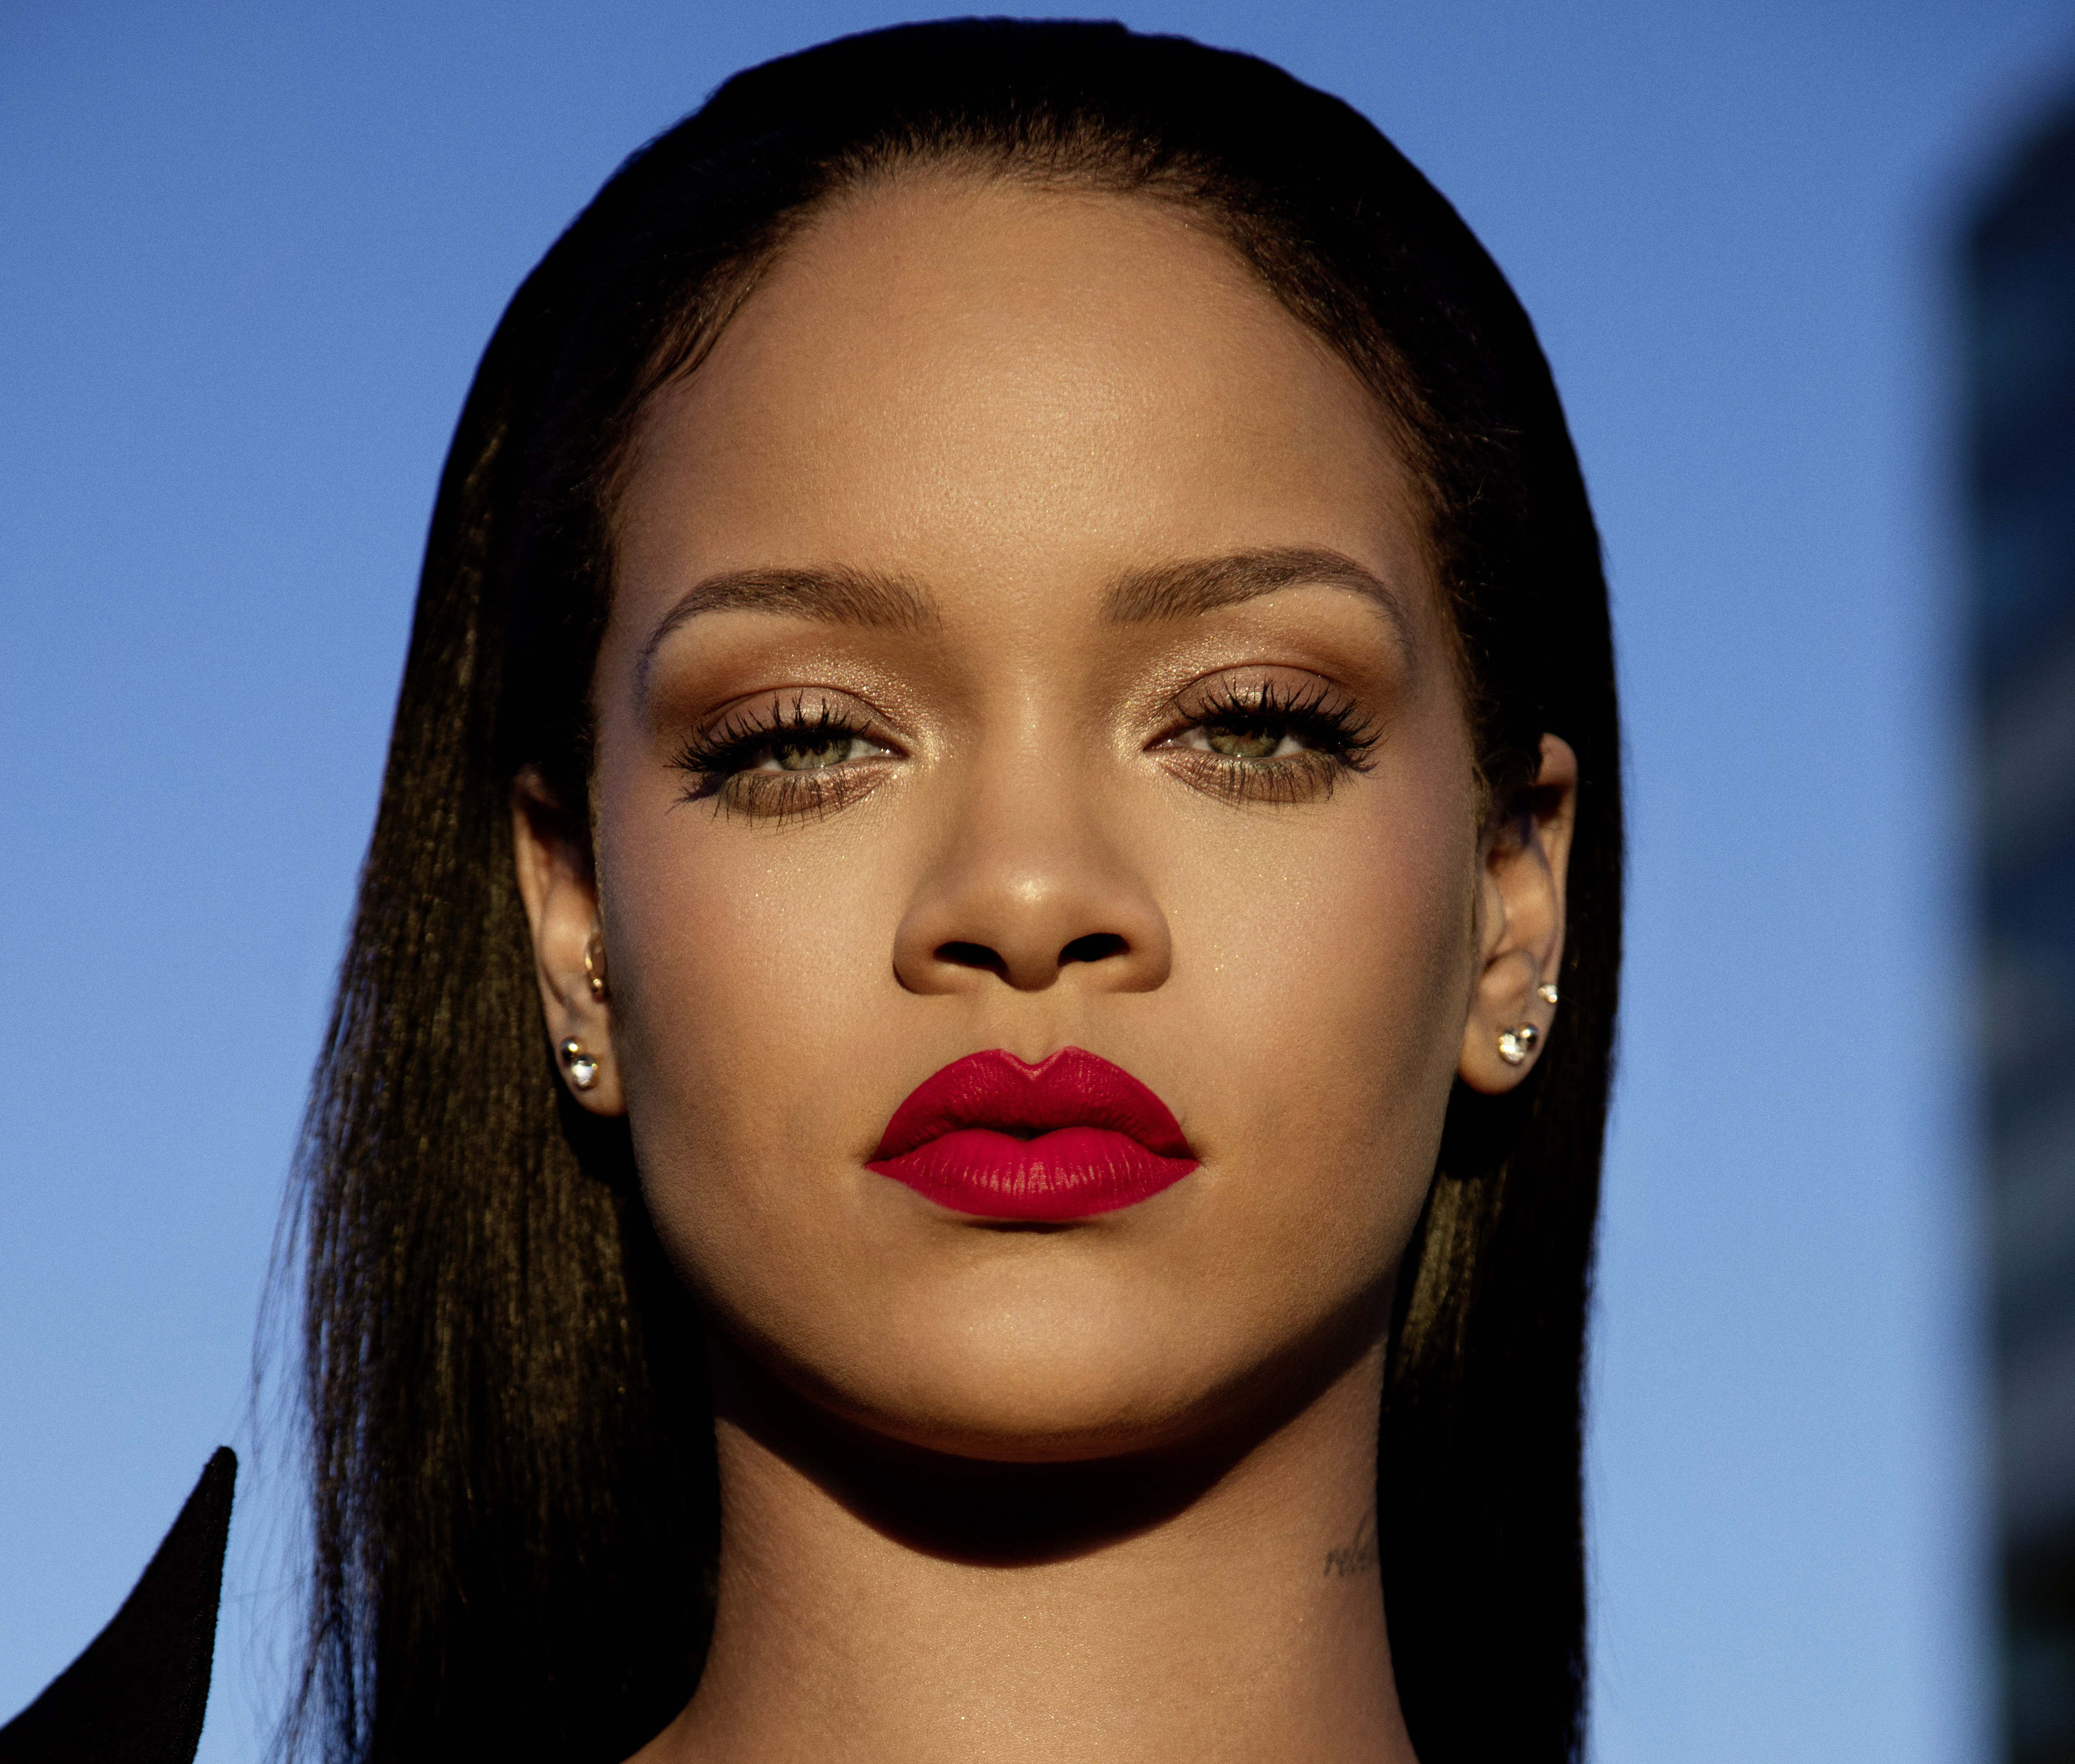 rihanna 5k, hd celebrities, 4k wallpapers, images, backgrounds